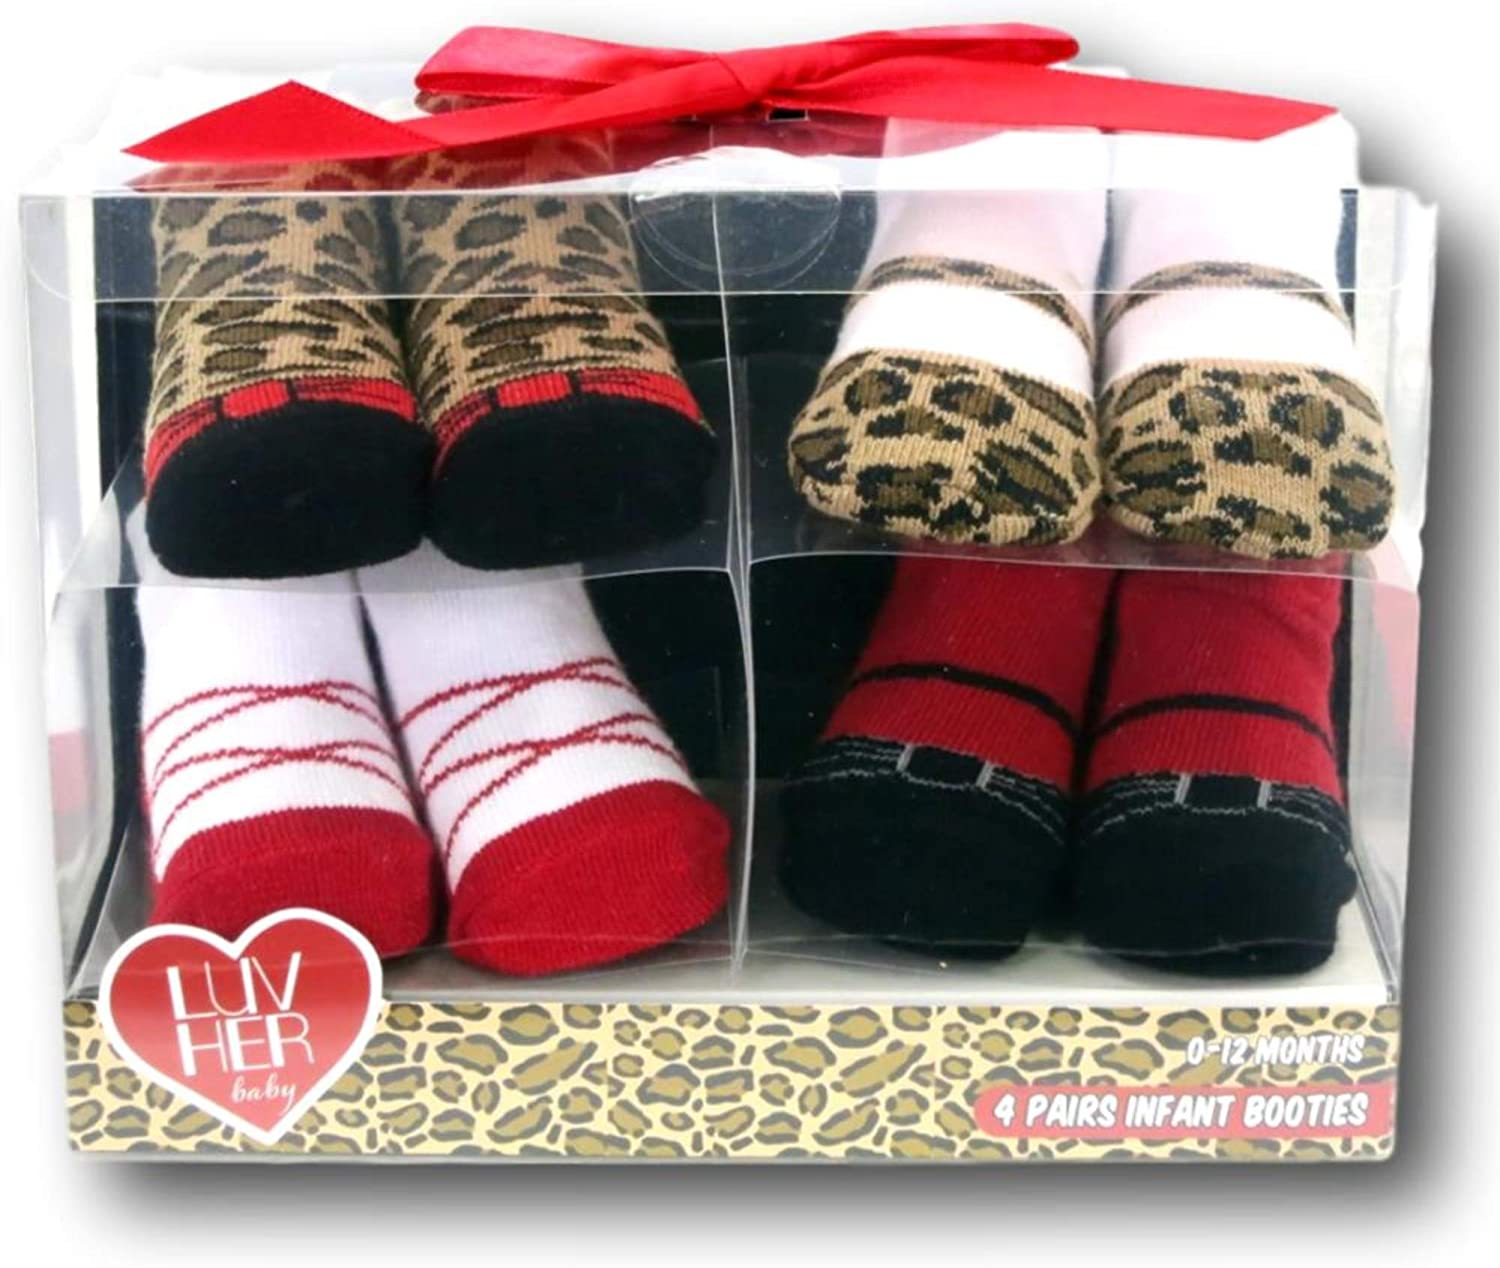 B07D2J8BCP 4 Pairs Infant Girls Leopard Animal Print Baby Booties - 0 to 12 Months 7167R-ApMkL